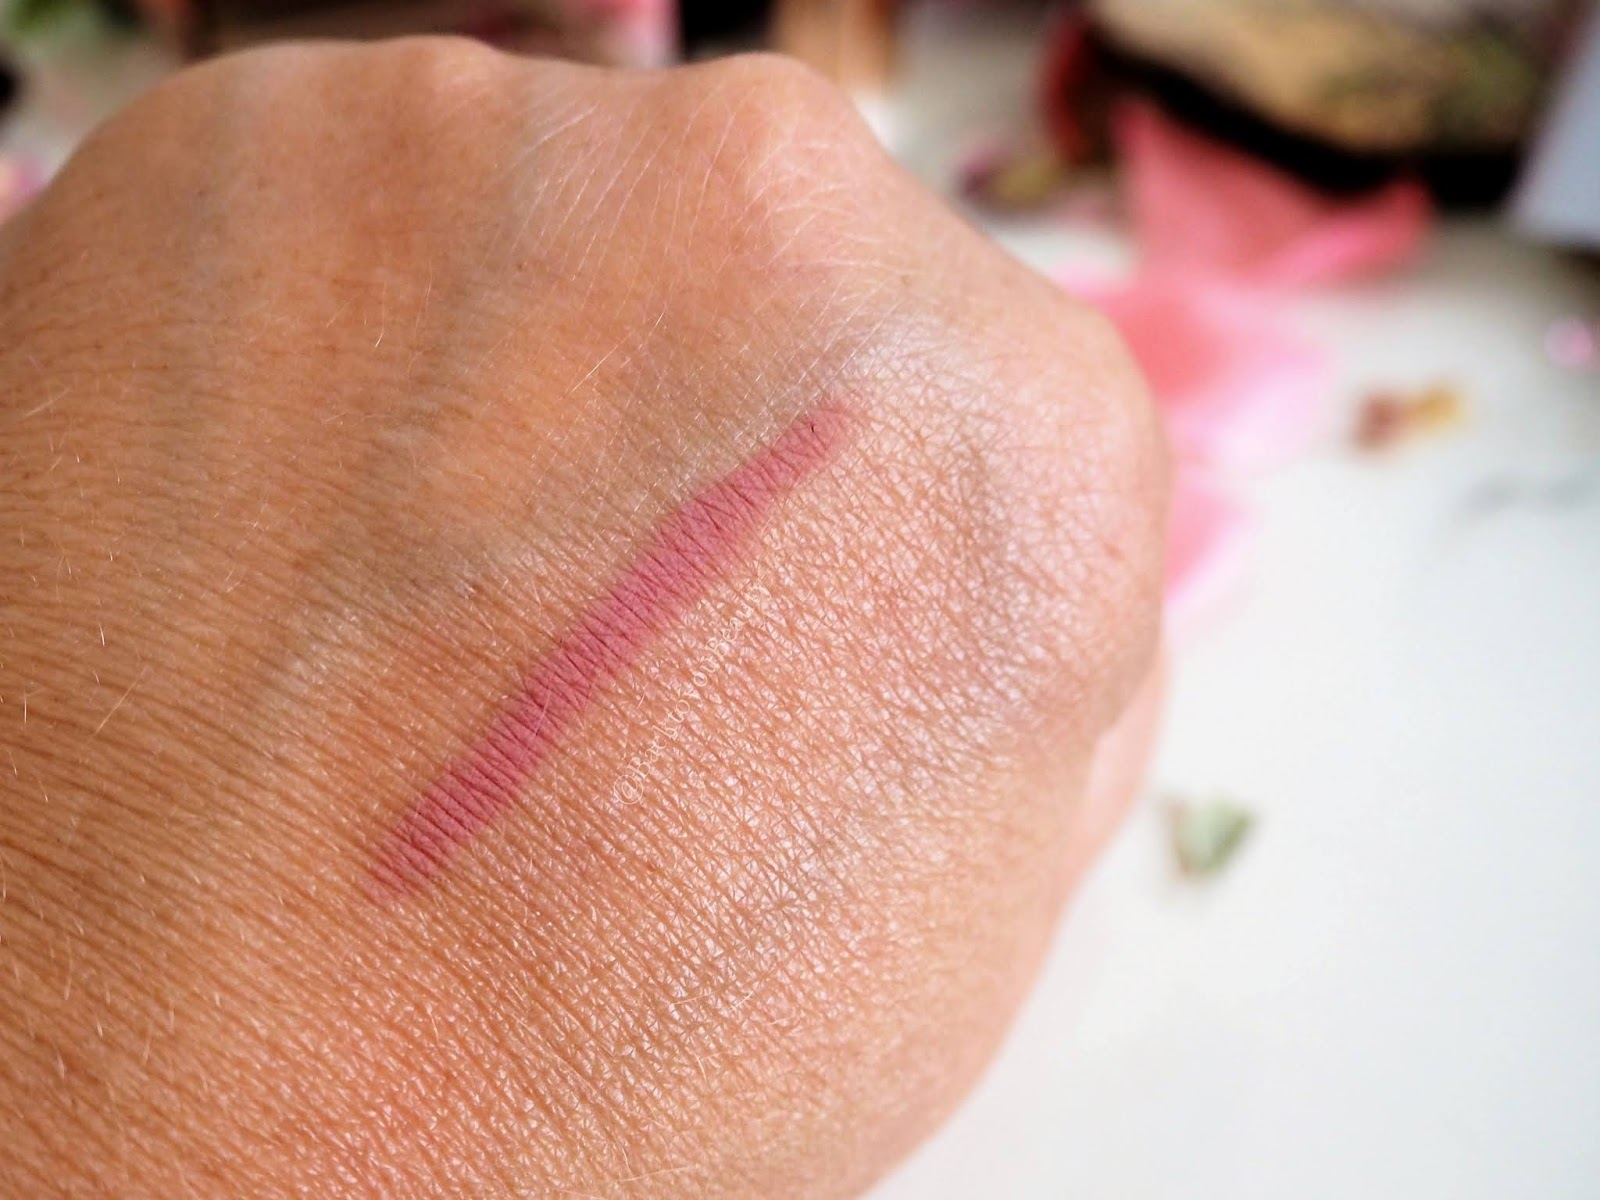 Charlotte Tilbury Lip Cheat in Pillow Talk swatch